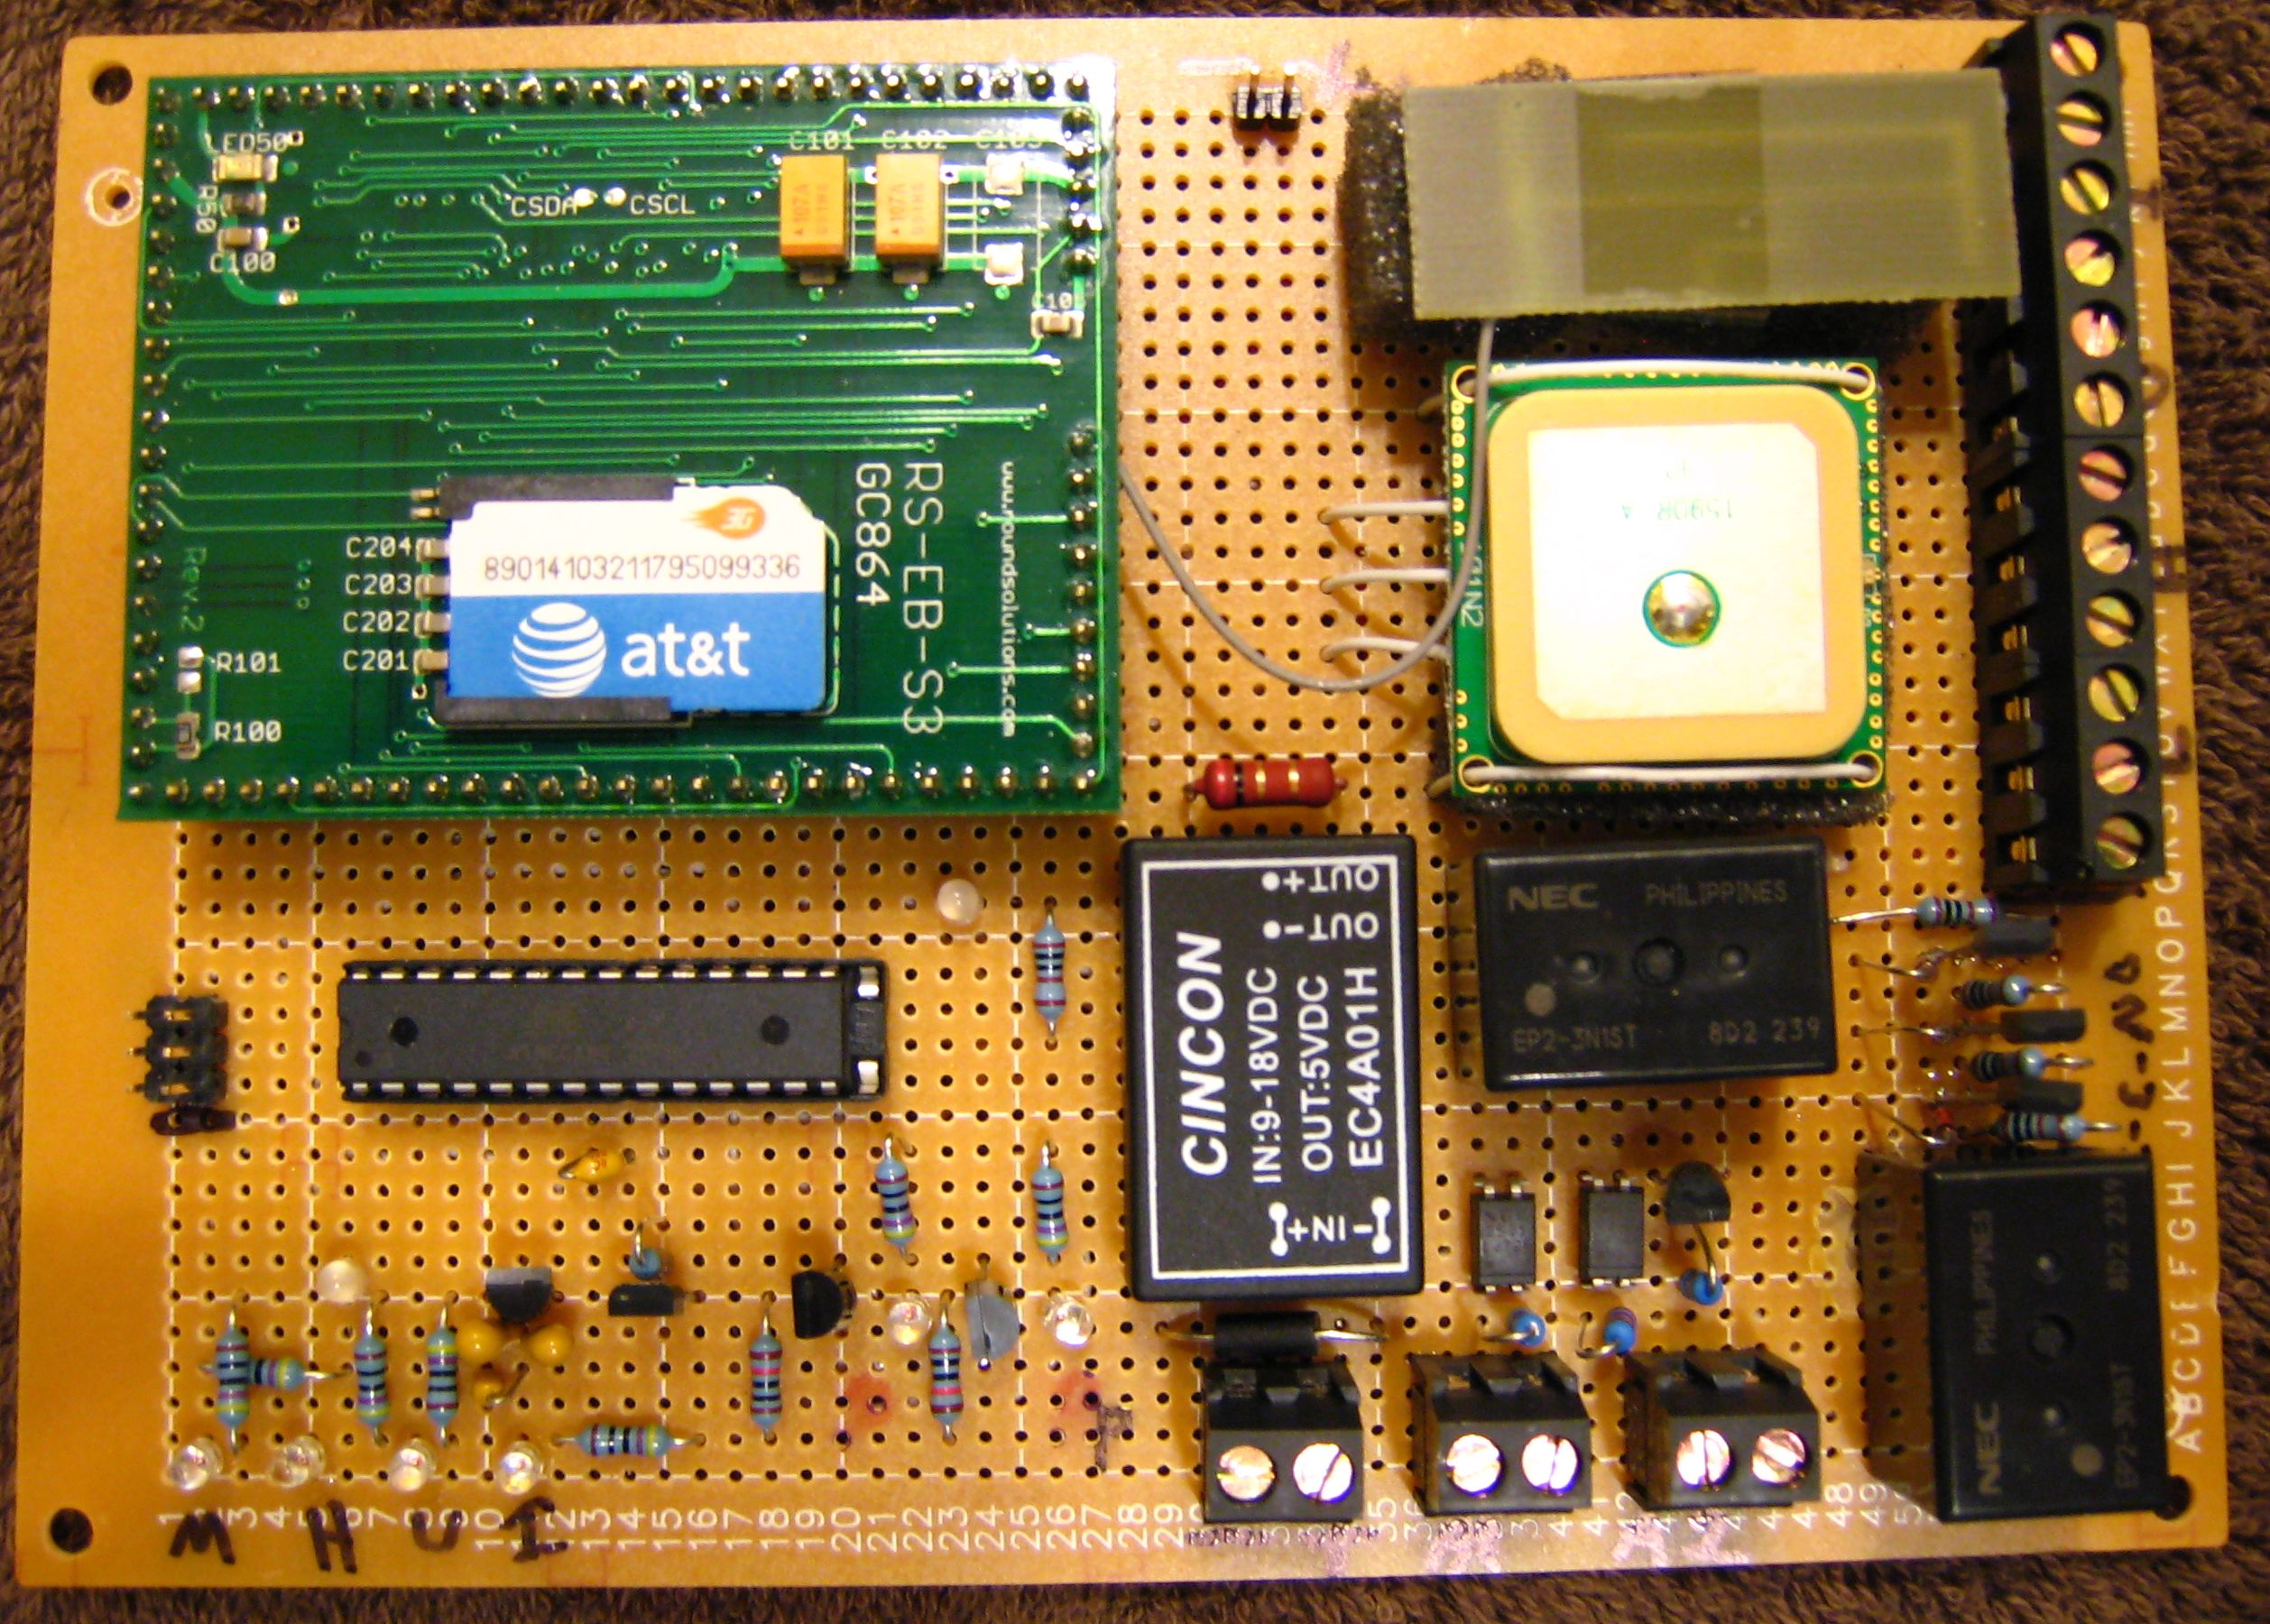 Car Security And Remote Sensing Features Help With Npn Transistor Relay Circuit Electronics Forum Circuits Board Has Atmega88 Gc864 Gsm Module Aarlogic Gps 3a Integrated Antenna Lithium Ion Battery Charger Optoisolated Alarm Inputs Relays